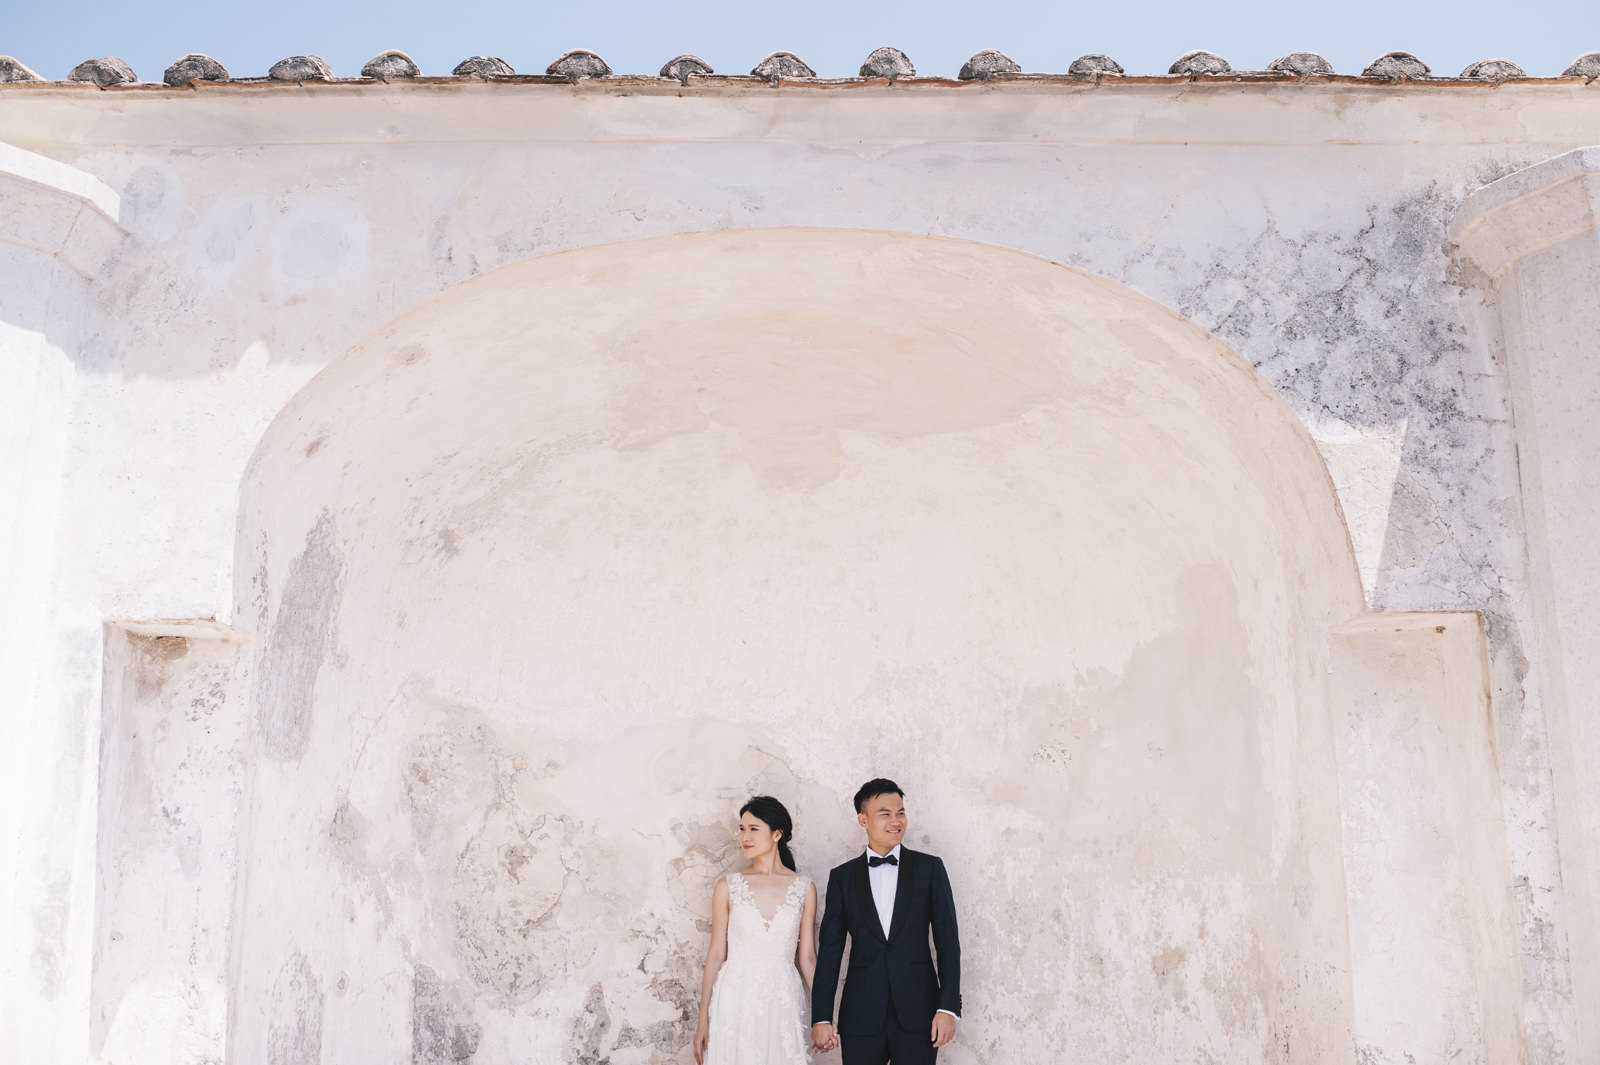 the bride and the groom standing side by side and lining against a white wall